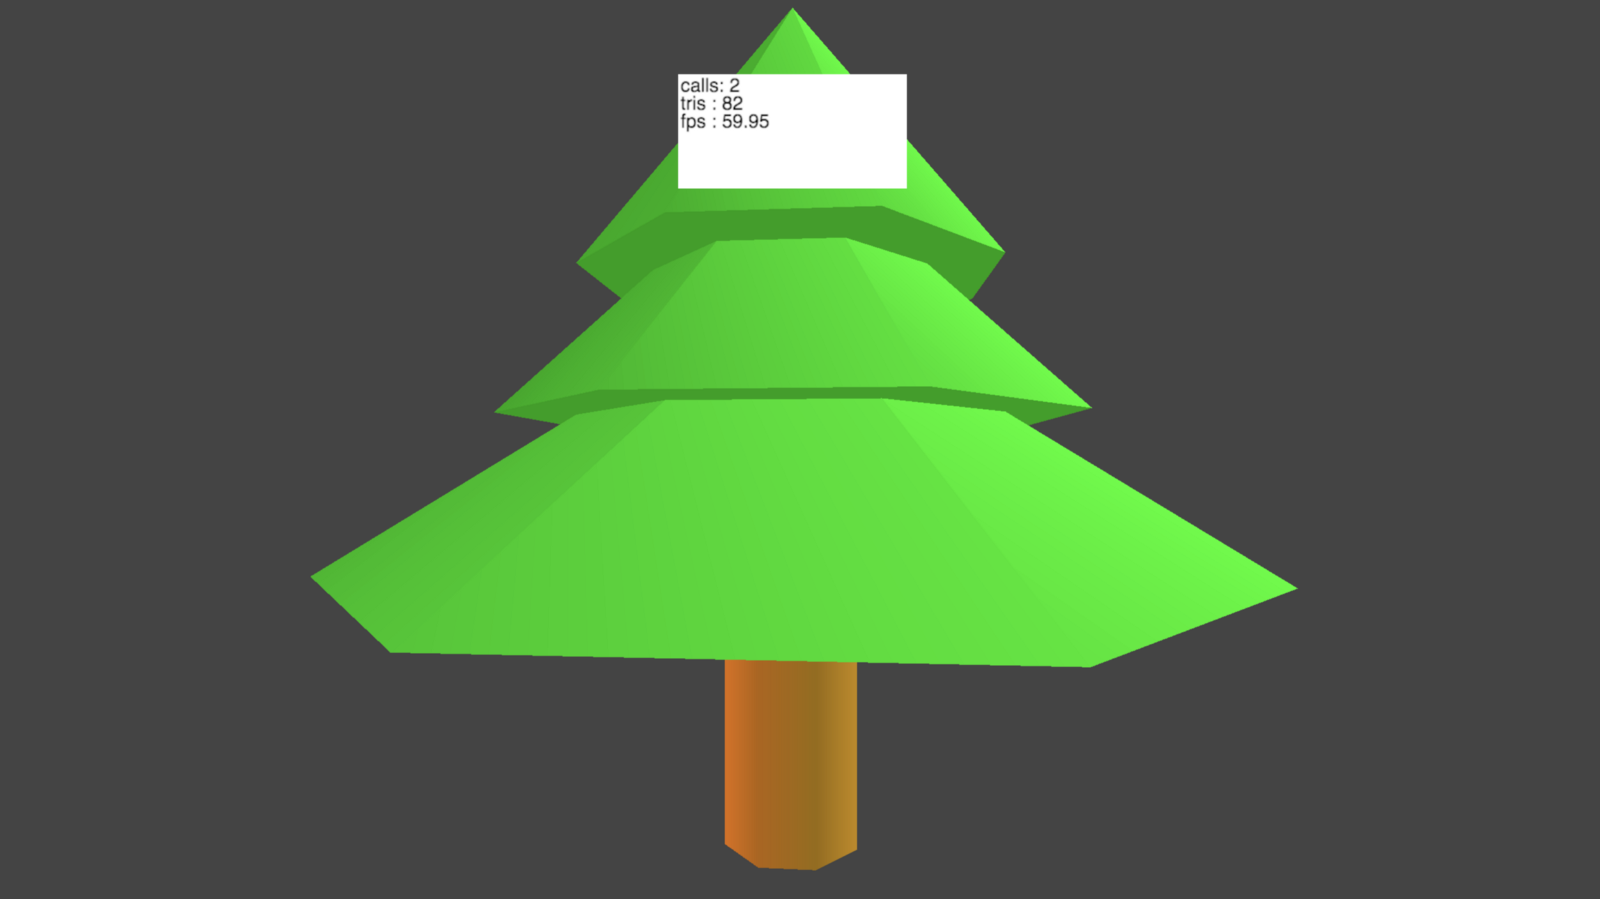 Tree with Vertex Colors